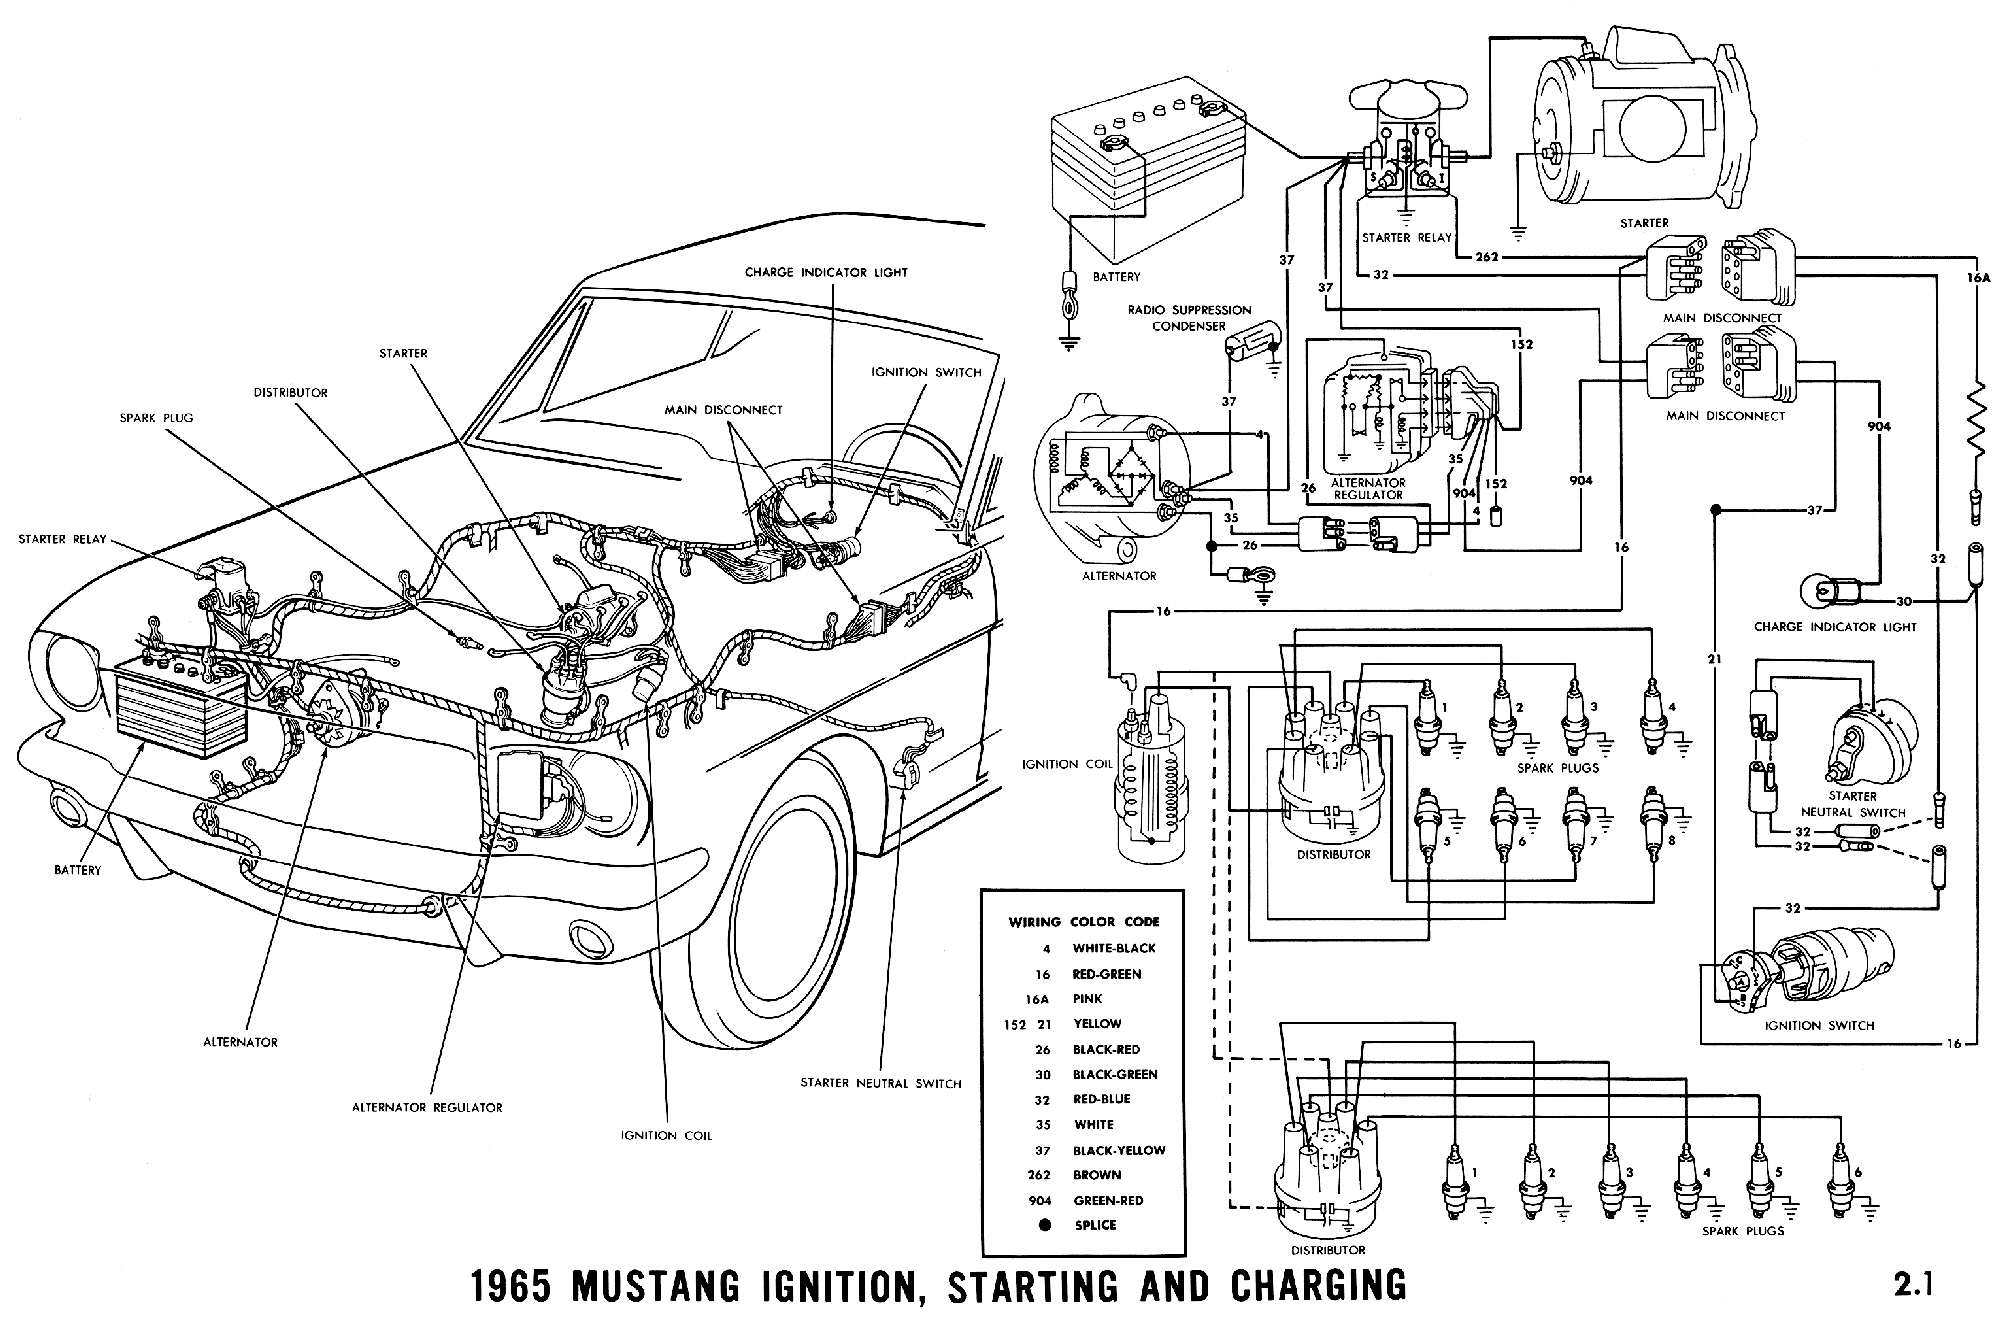 hight resolution of 1965 mustang wiring diagrams average joe restoration 1965 mustang alternator wiring diagram 1965 ford mustang alternator wiring diagram